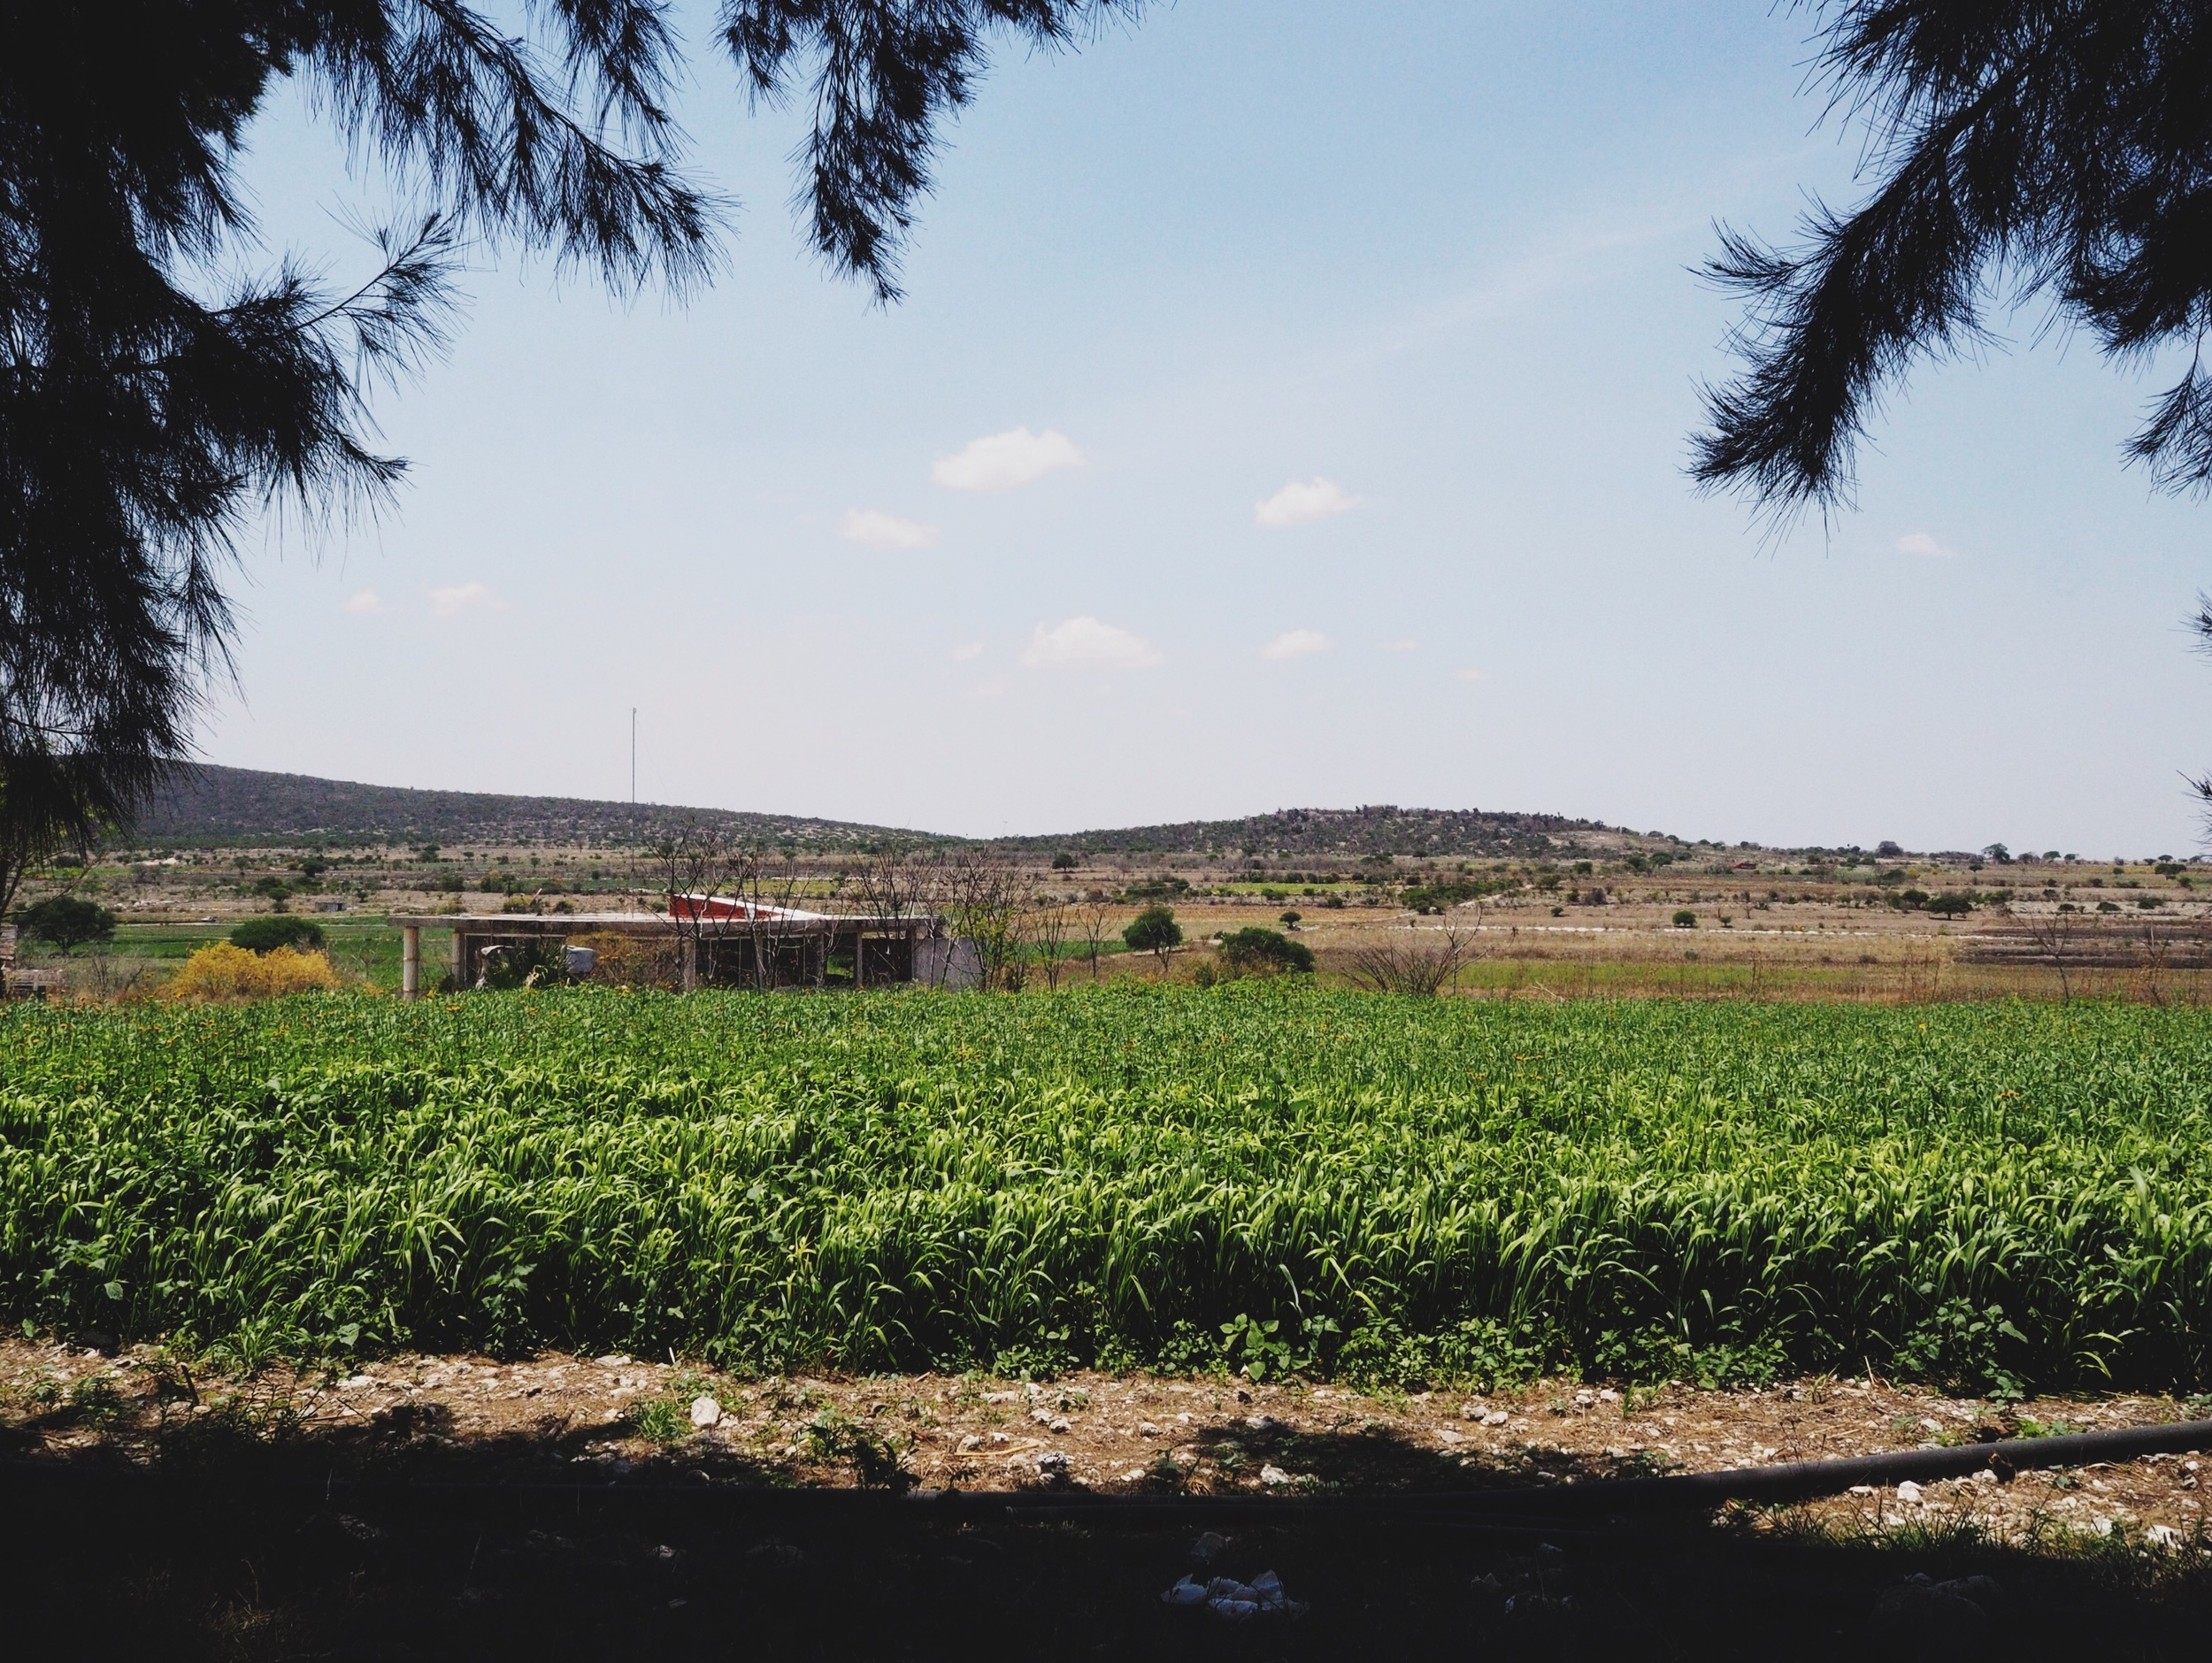 Lots of big agriculture in the area